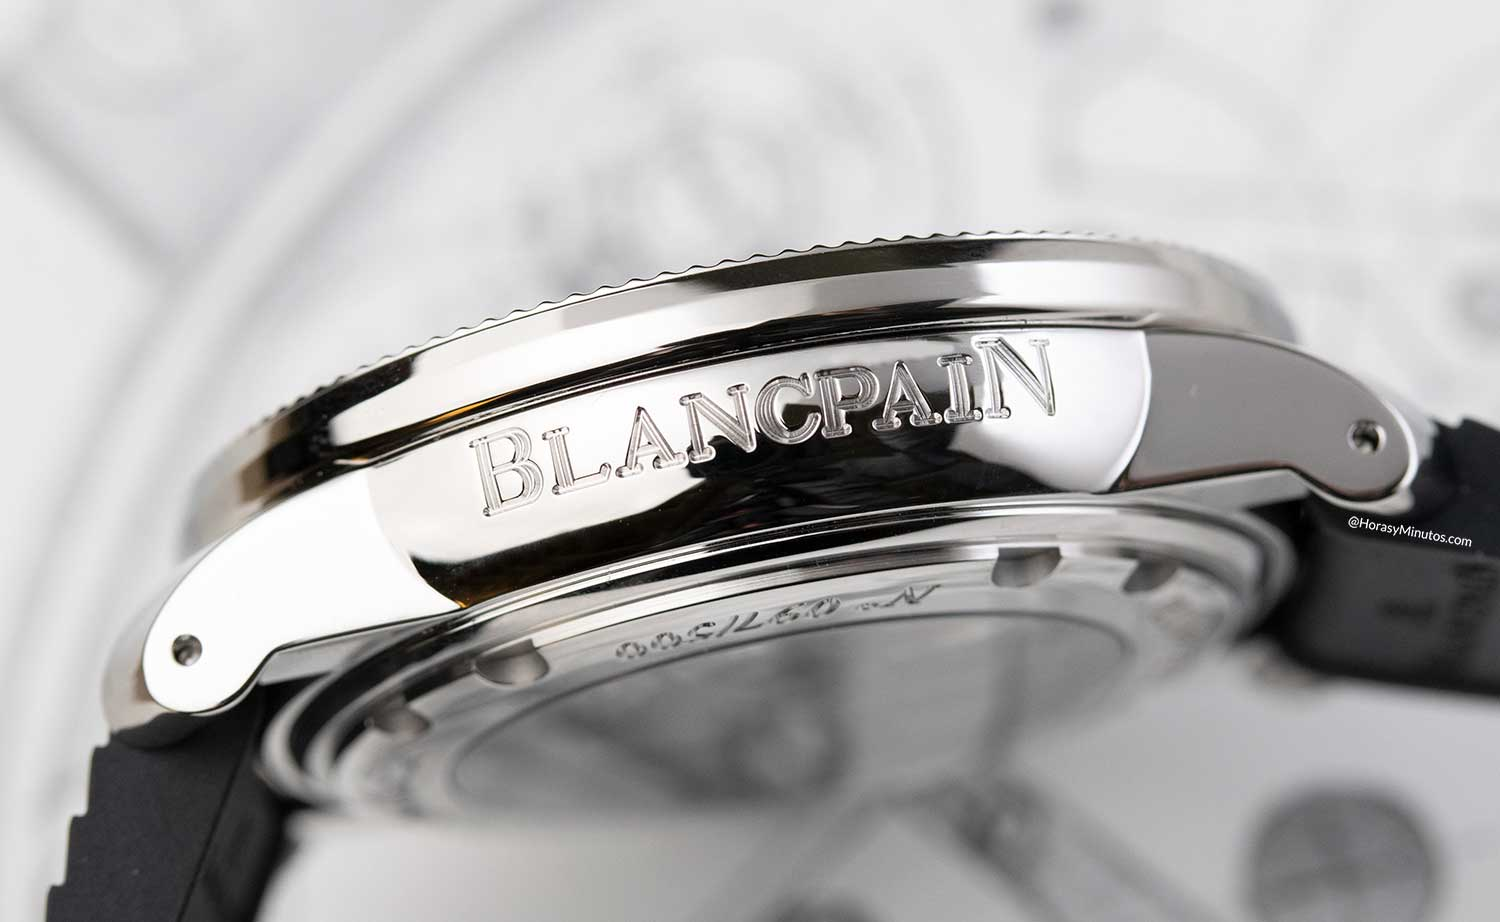 Lateral del Blancpain Tribute to Fifty Fathoms No Rad